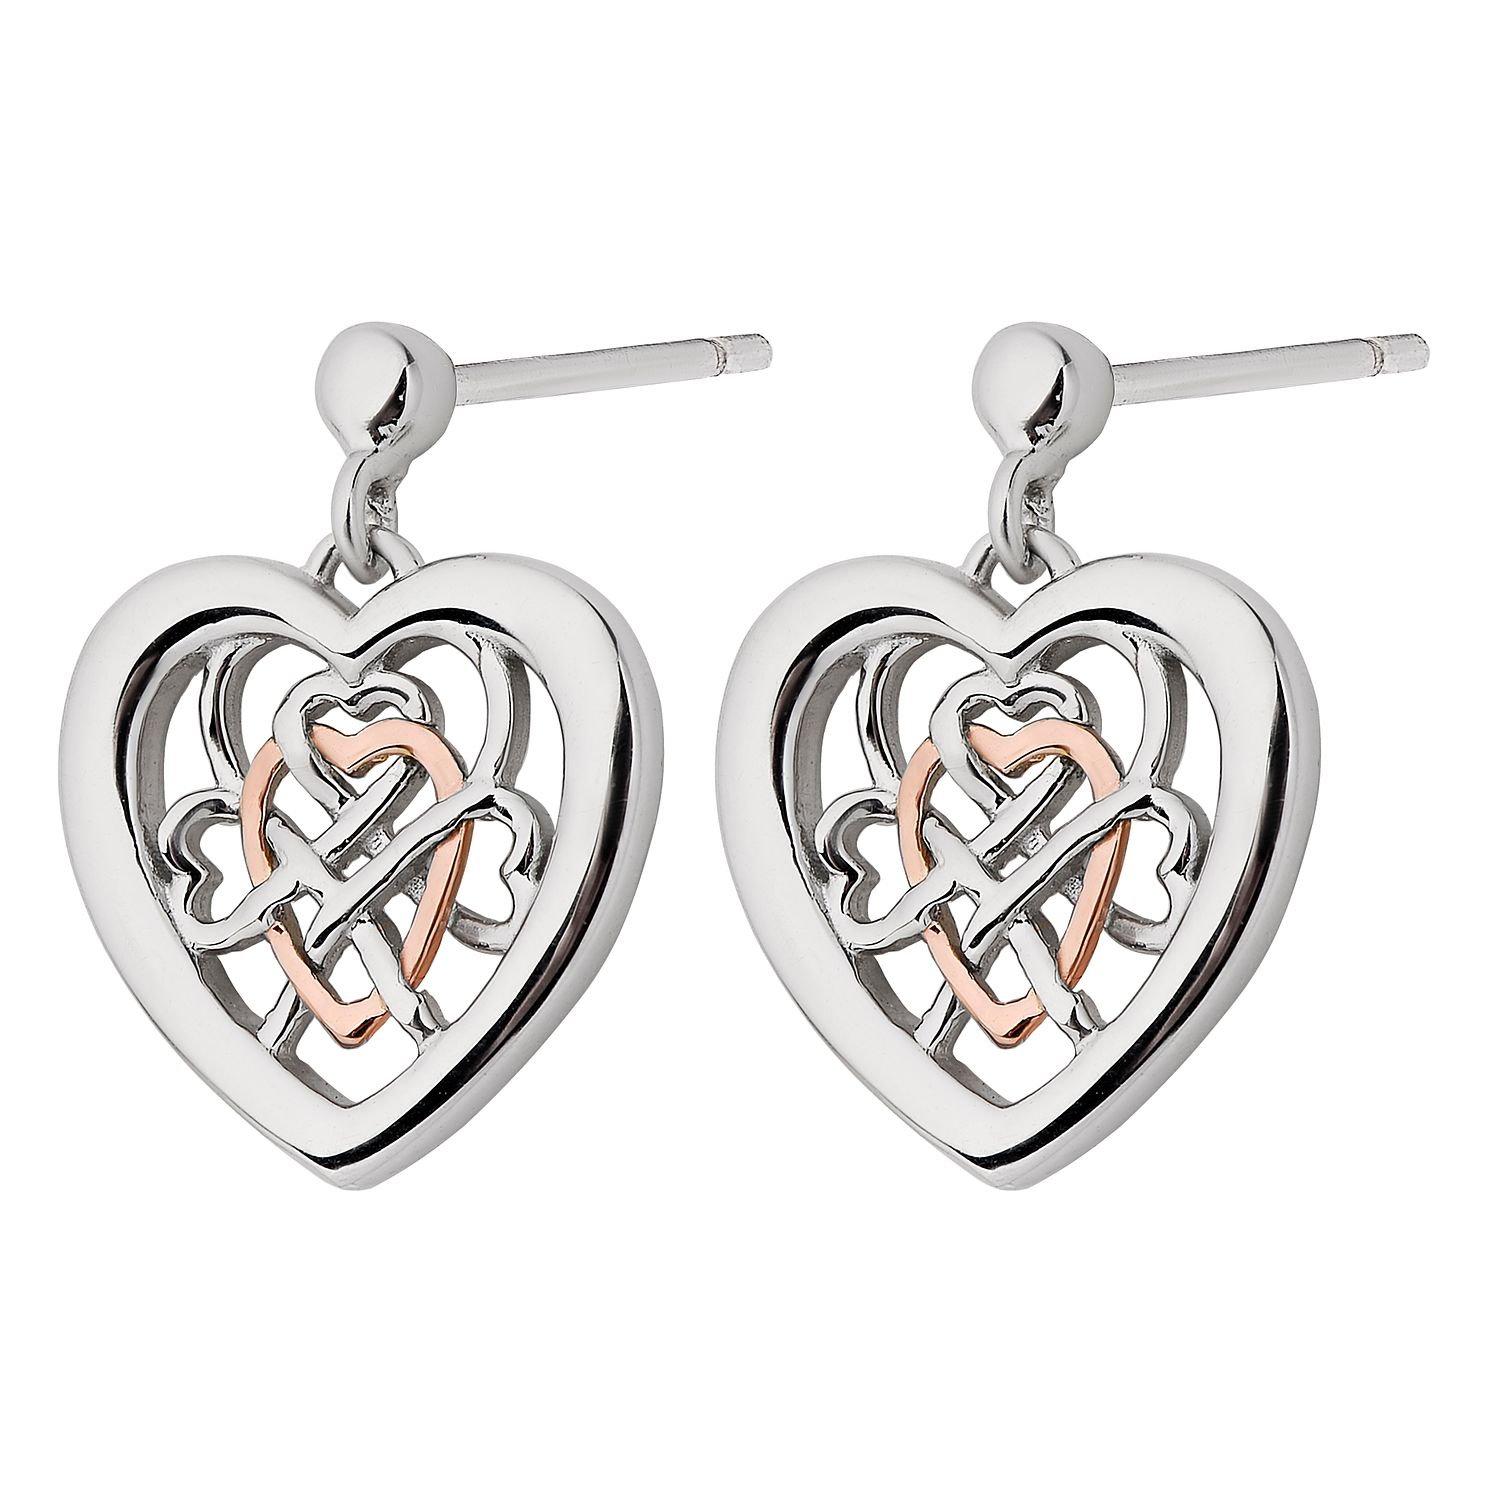 Clogau Sterling Silver & Gold Welsh Royalty Heart Earrings - Product number 4511662